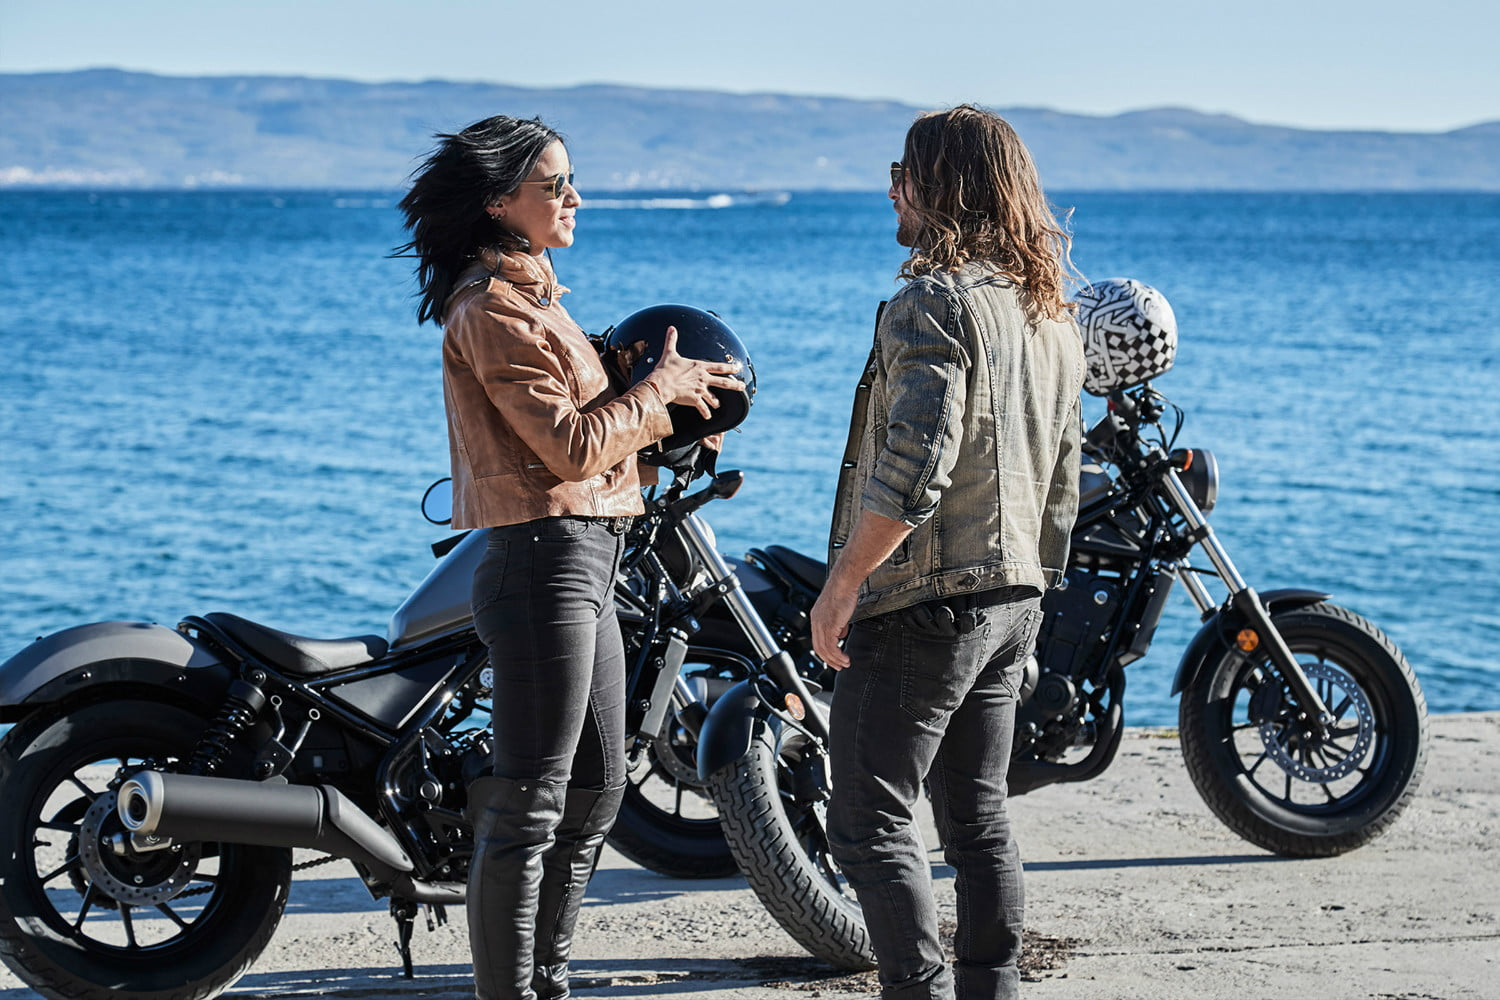 Honda S 2017 Rebel 500 Abs Ticks The Boxes For Everyday Riding